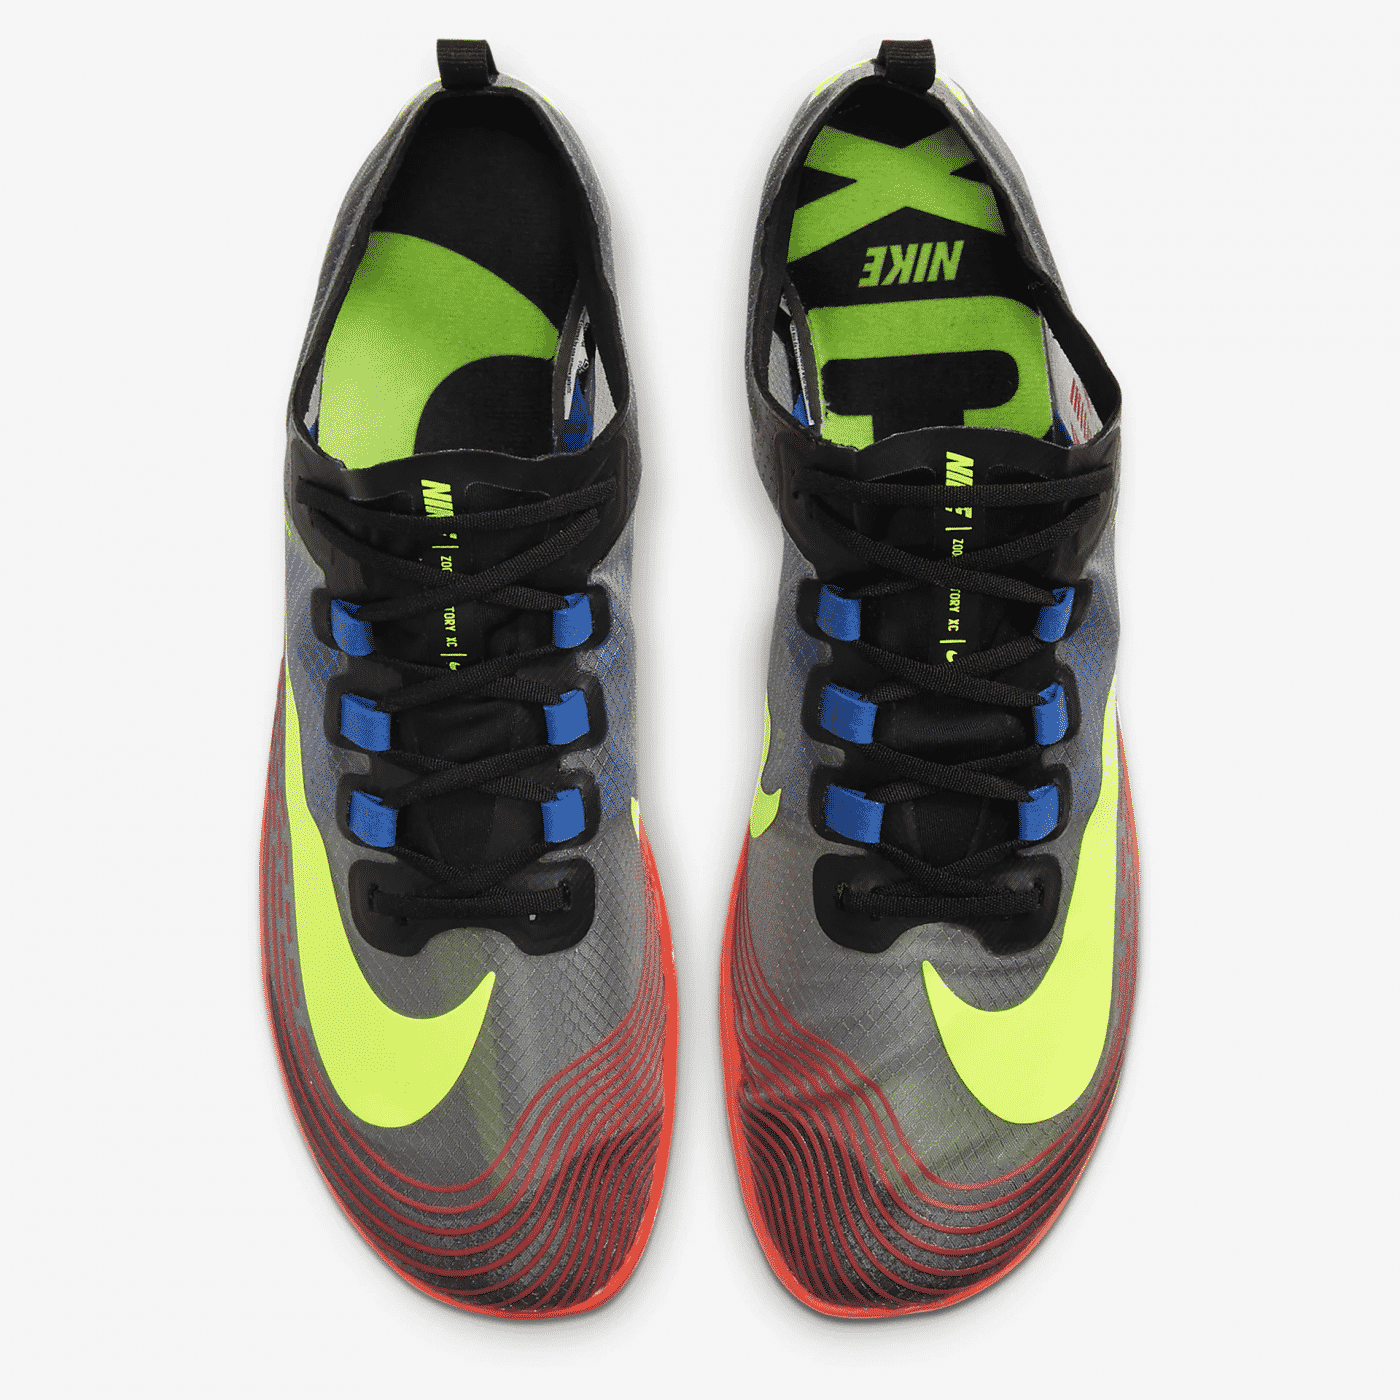 nike_pointes_cross_zoom_victory_XC_5_6